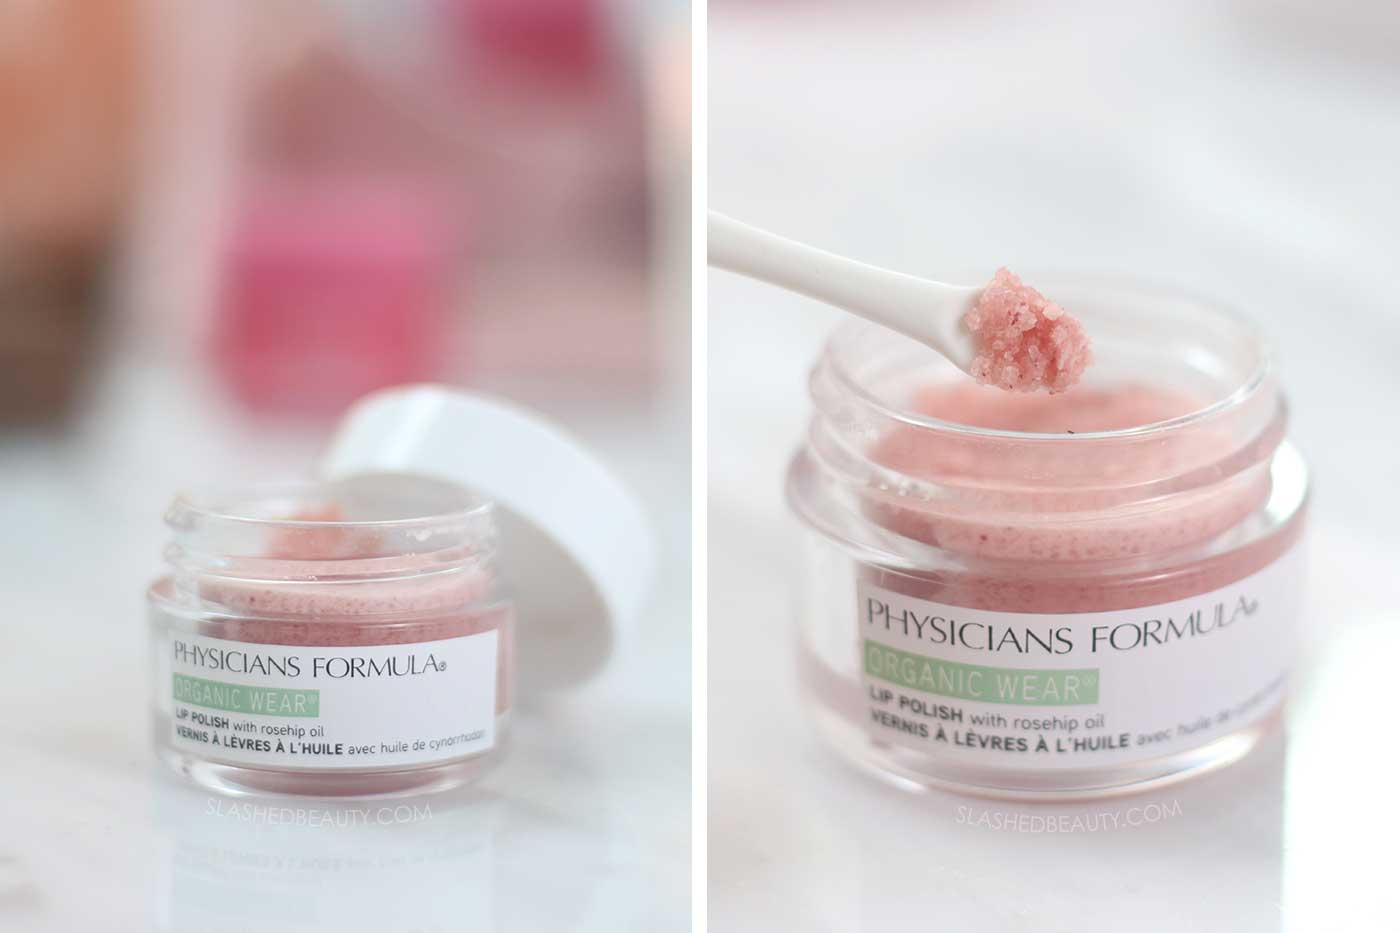 How to Get Rid of Chapped Lips for Good | Physicians Formula Organic Wear Lip Polish Review | Best Products for Chapped Lips | Slashed Beauty